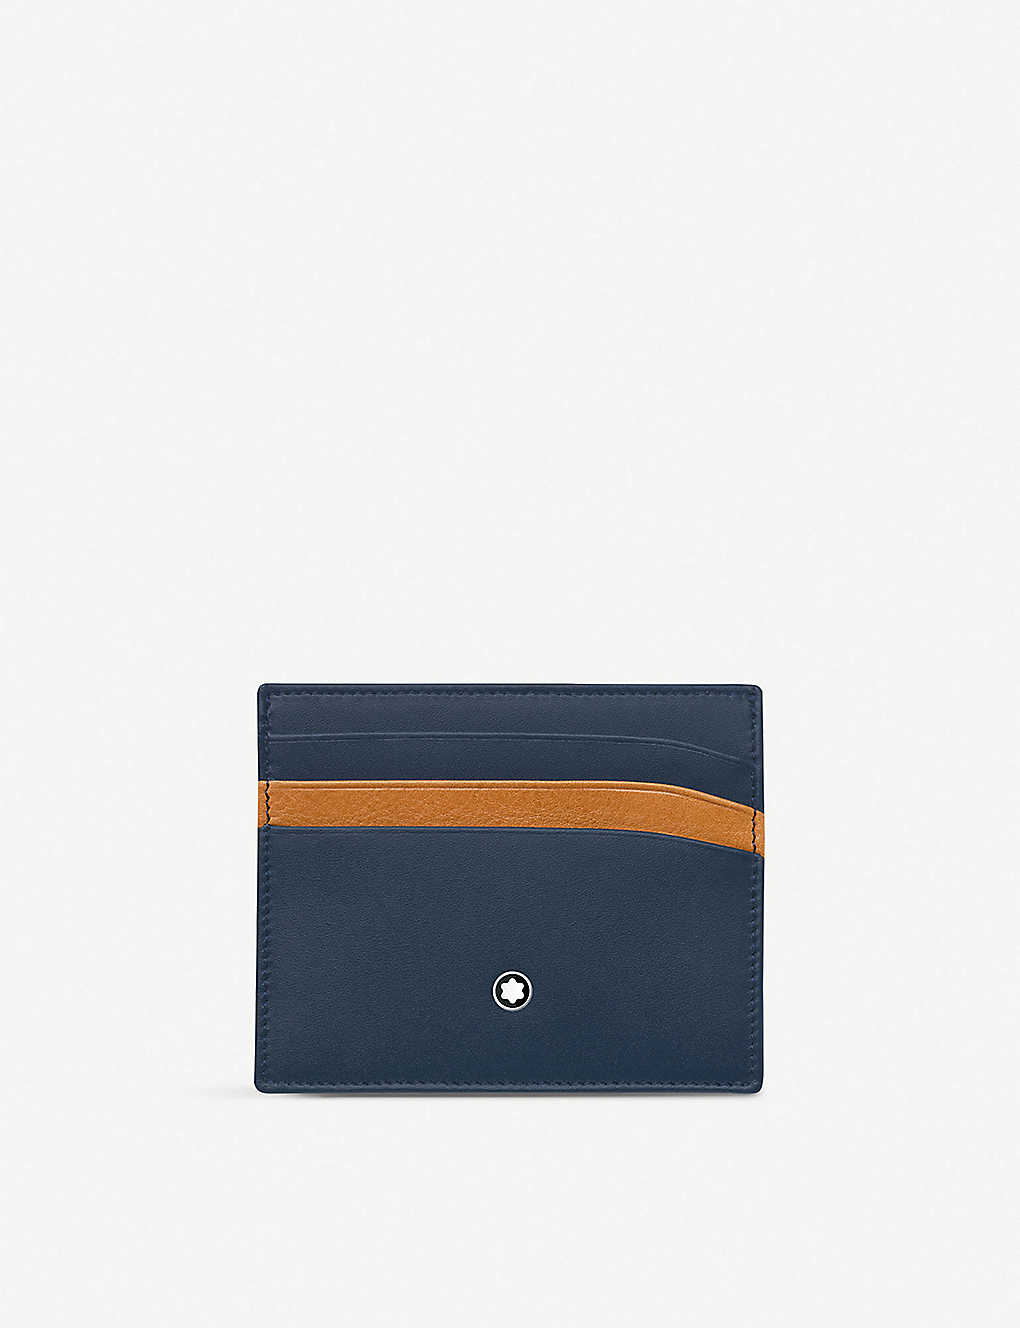 MONTBLANC: Pocket contrast slot leather cardholder